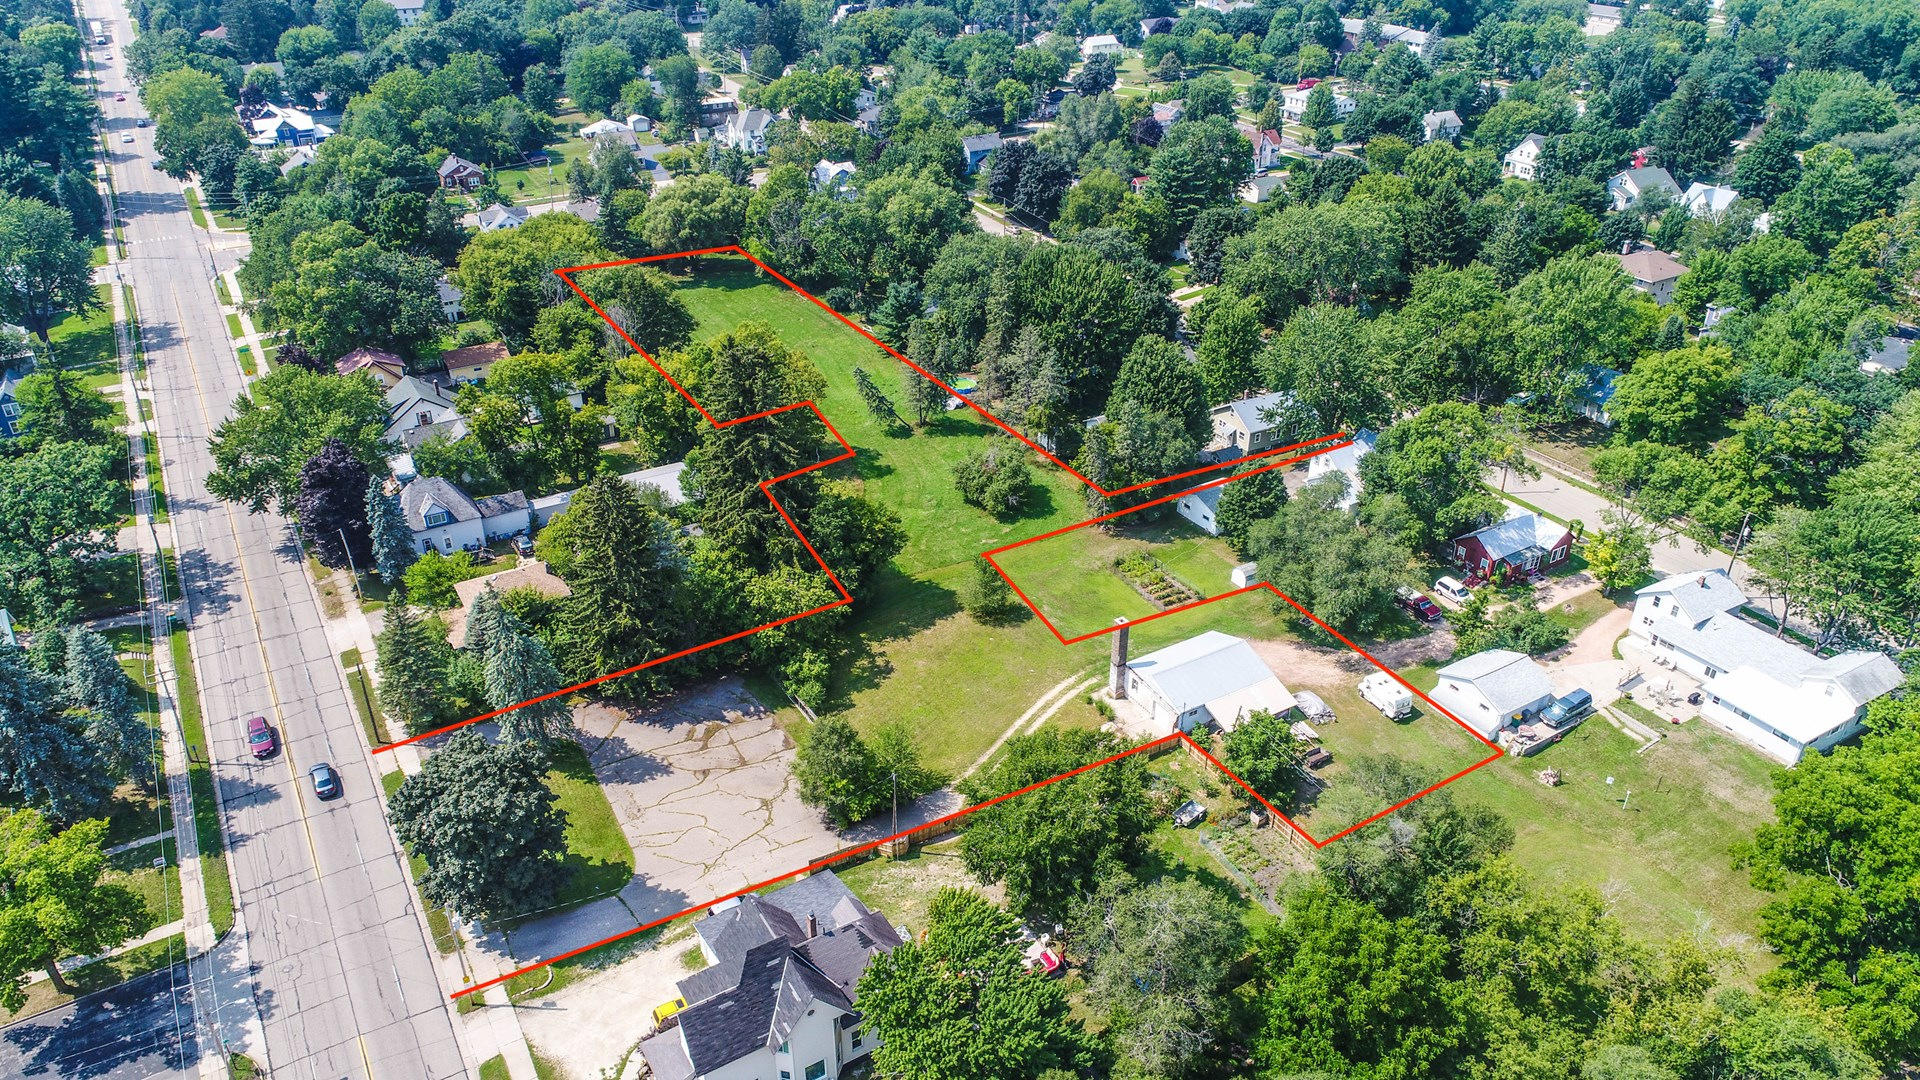 Commercial Vacant Land for sale in Waupaca, WI